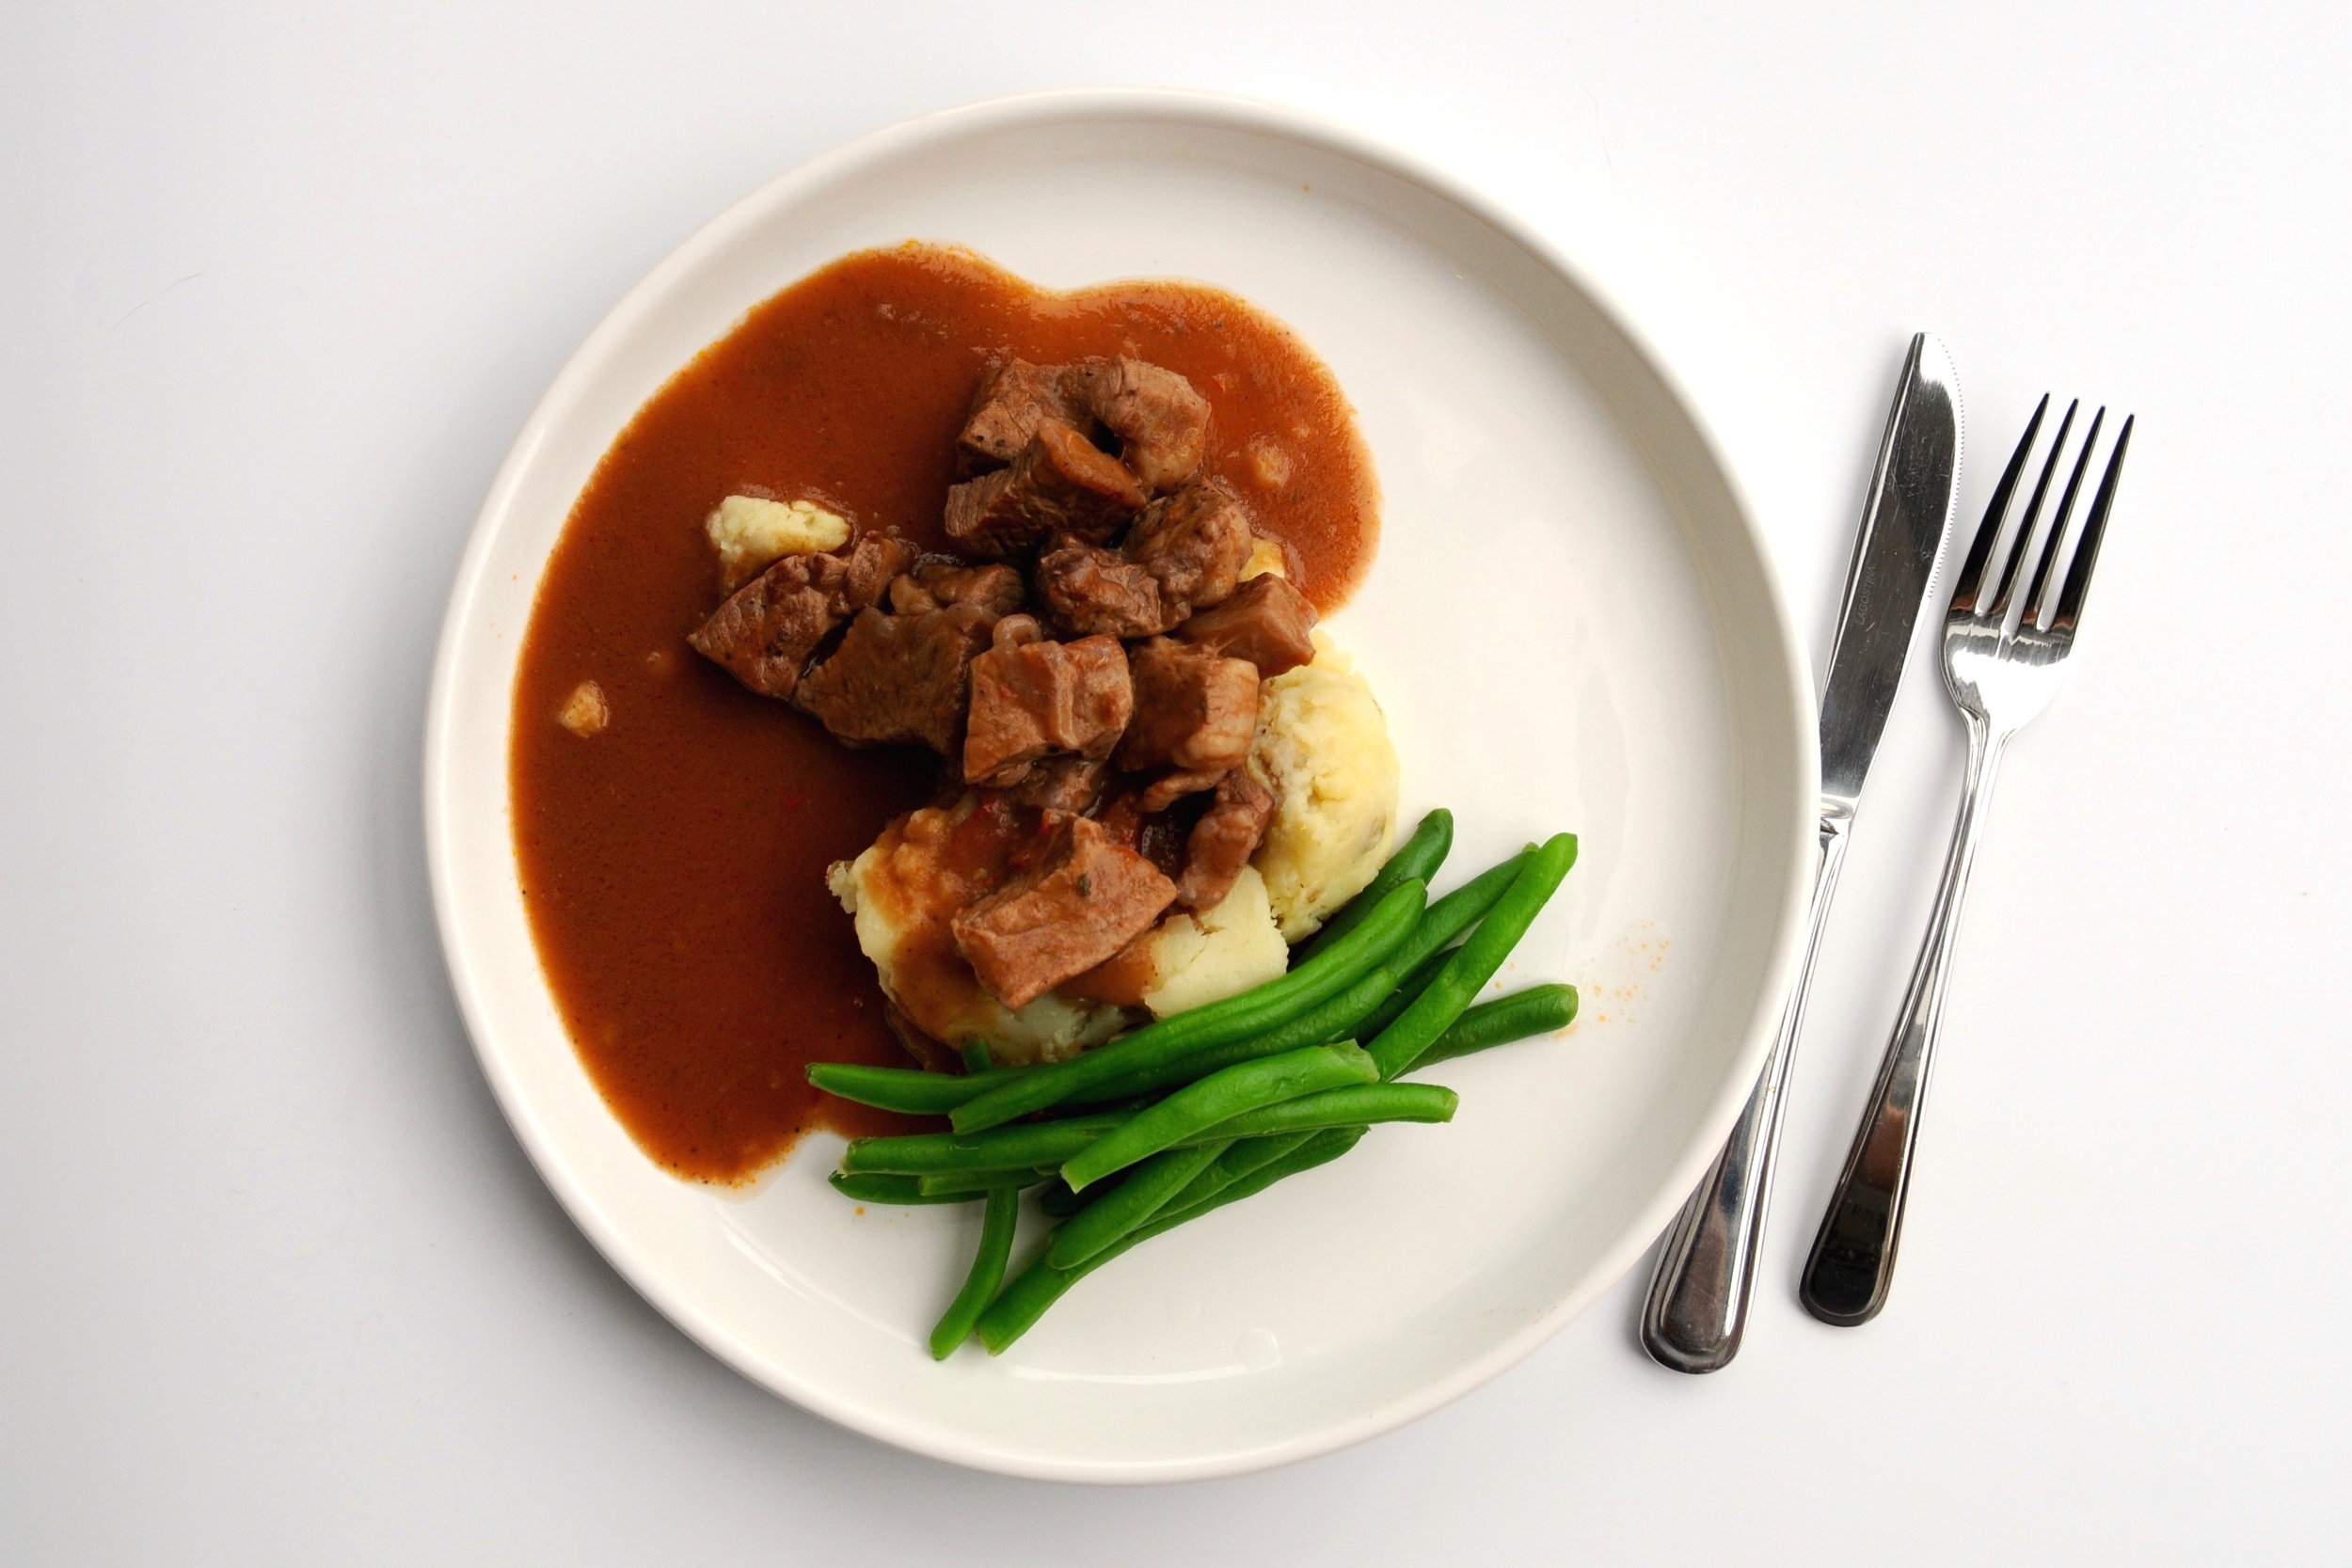 Red wine braised beef with whipped dairy-free mashed potatoes, and green beans.